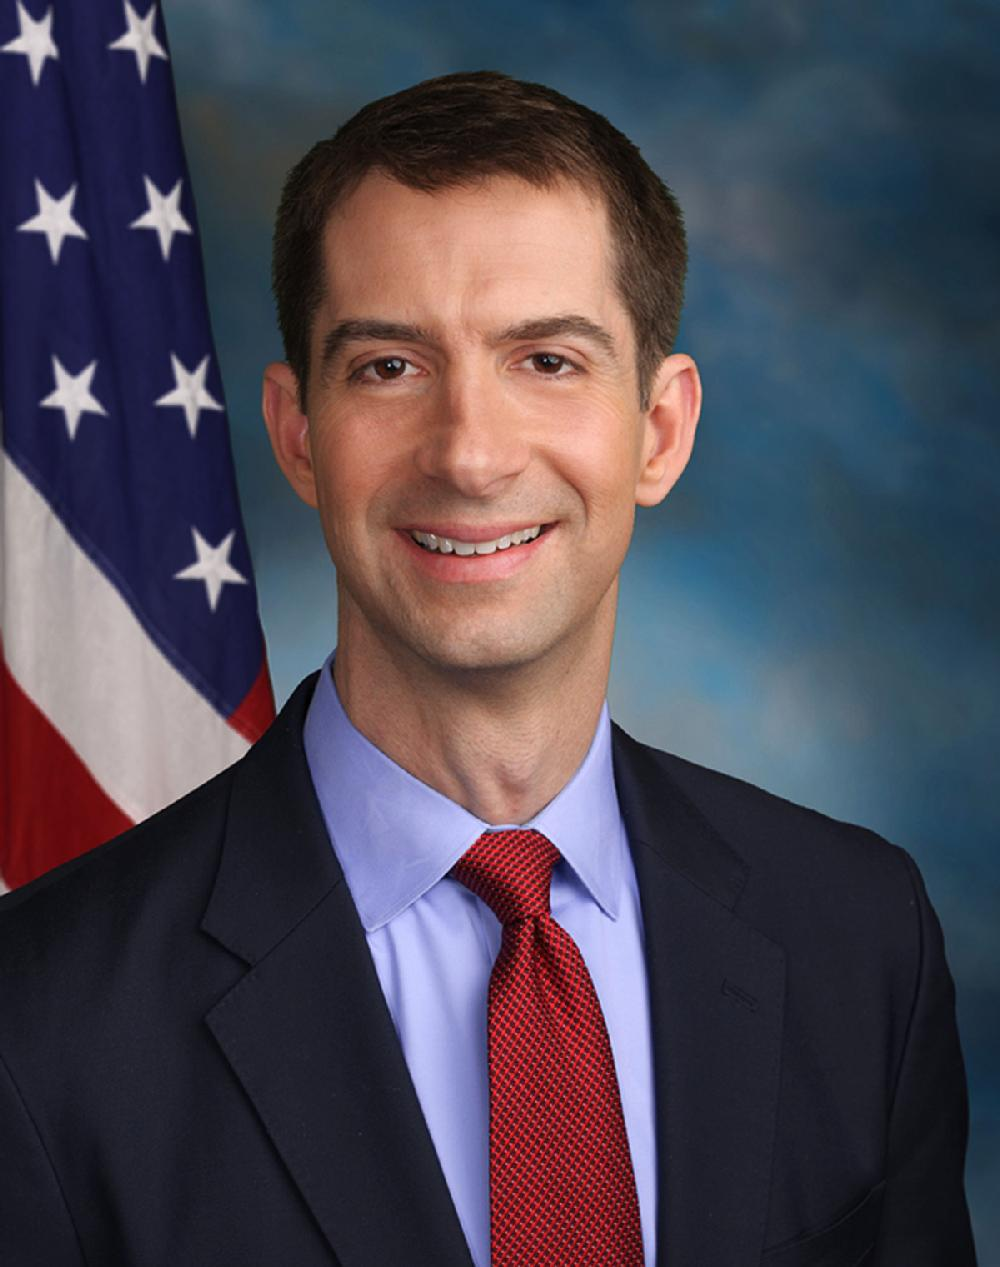 Event - Online at the Reagan Institute with Senator Tom Cotton